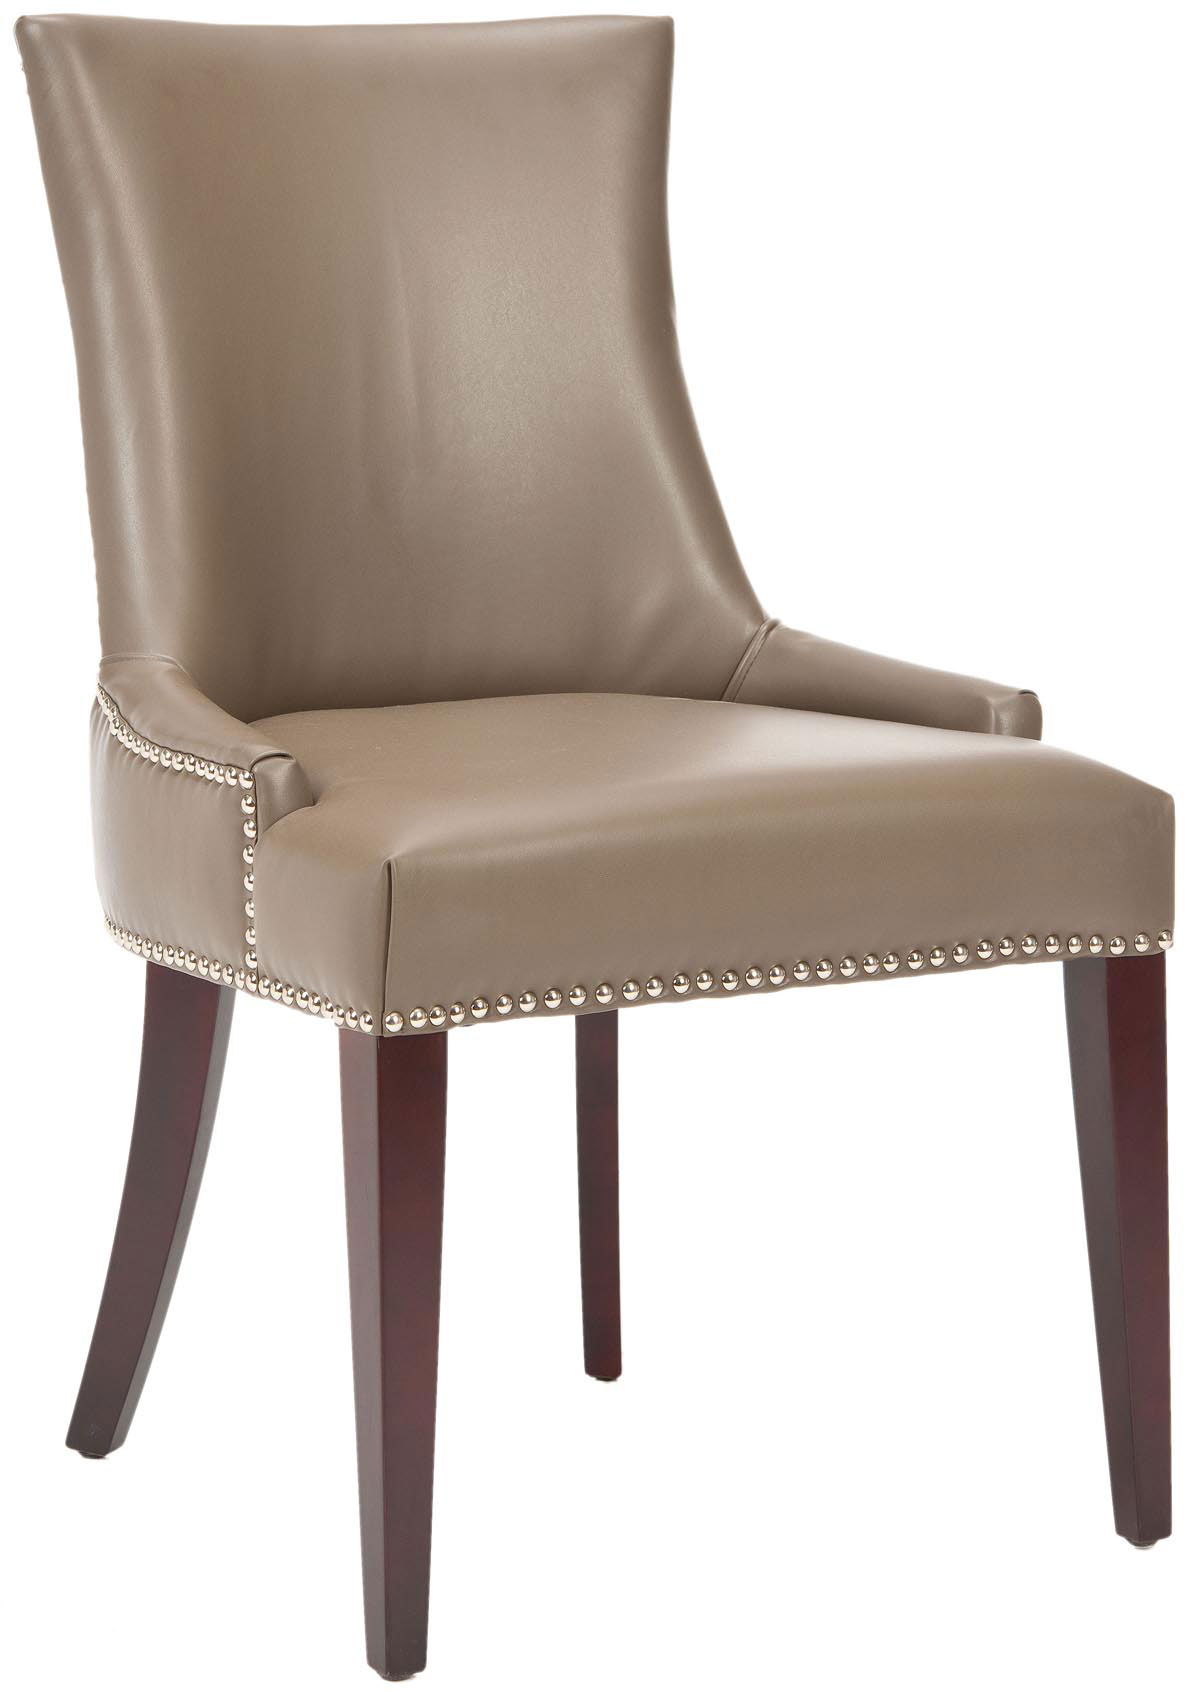 mcr4502g dining chairs furniture by safavieh. Black Bedroom Furniture Sets. Home Design Ideas